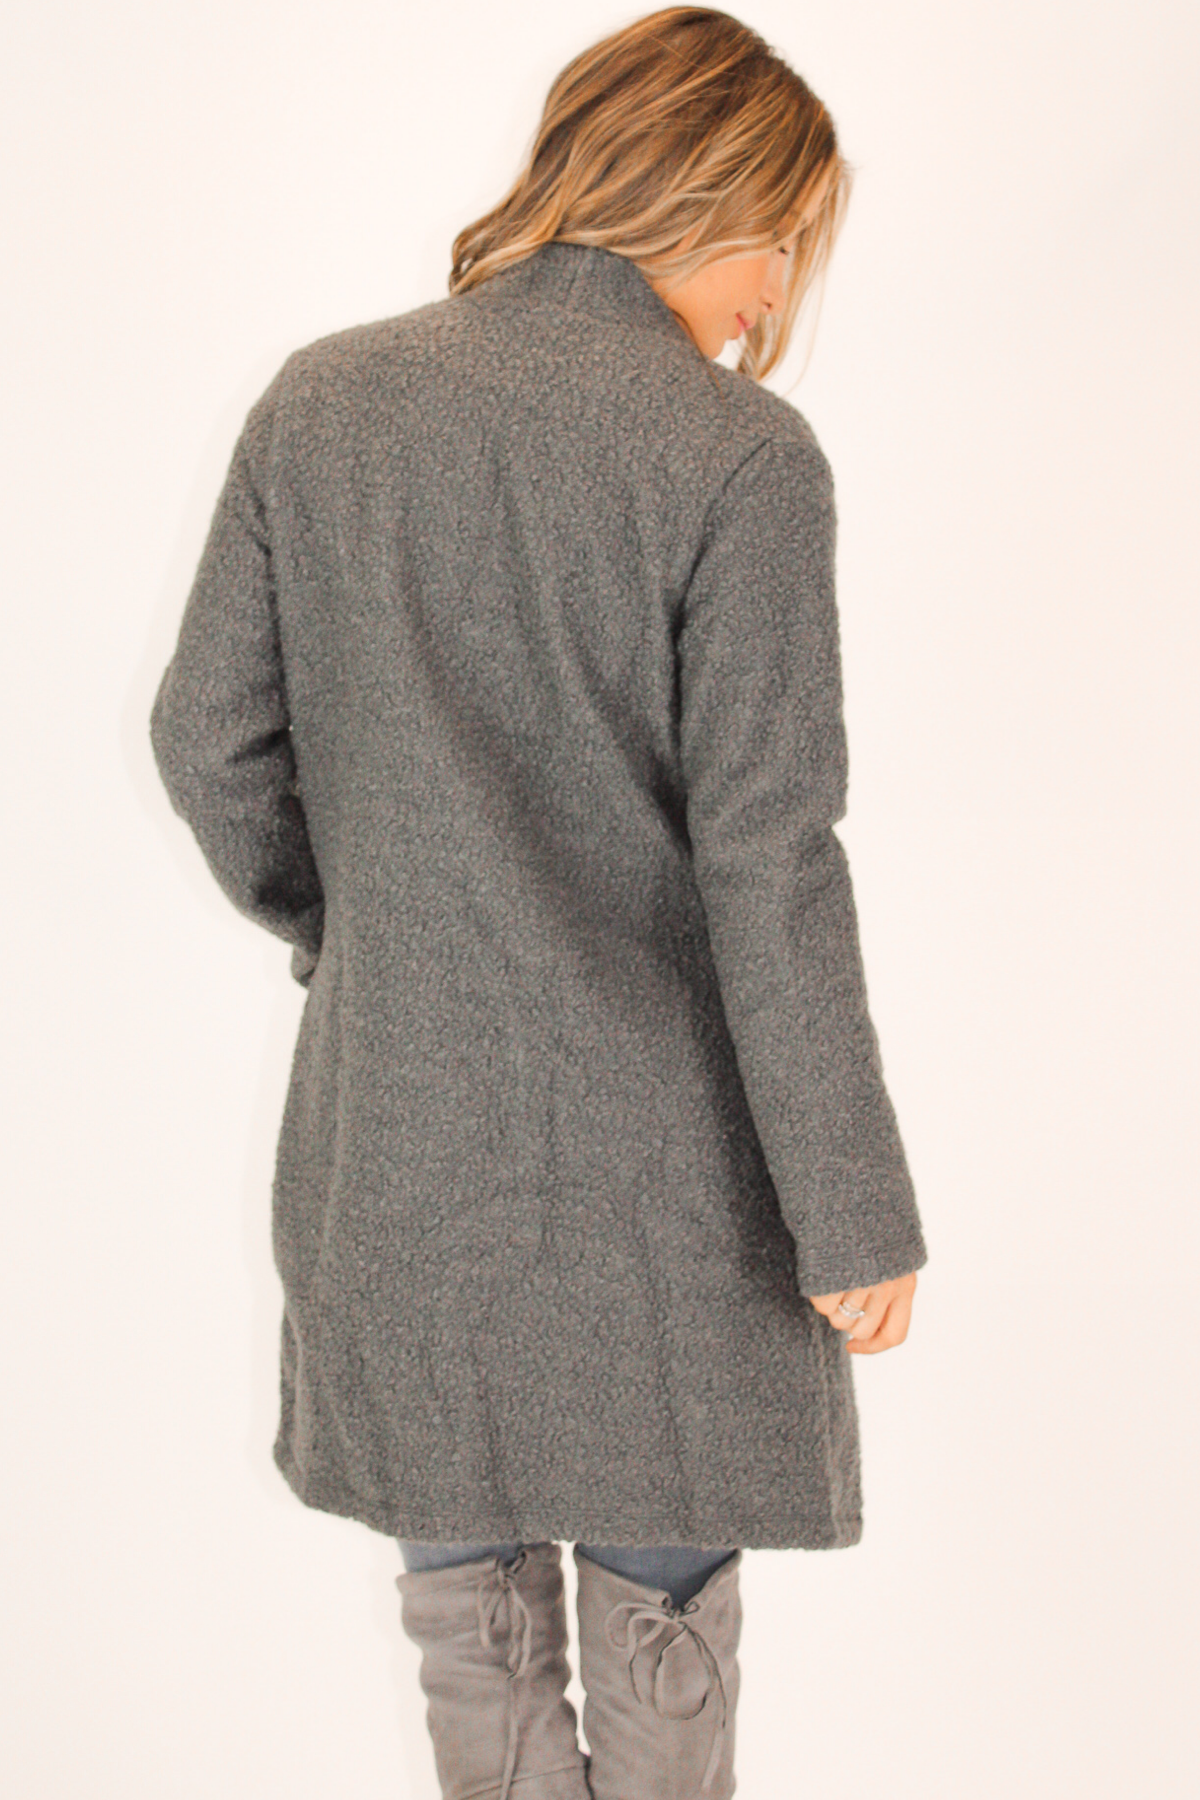 CHARCOAL TEDDY JACKET